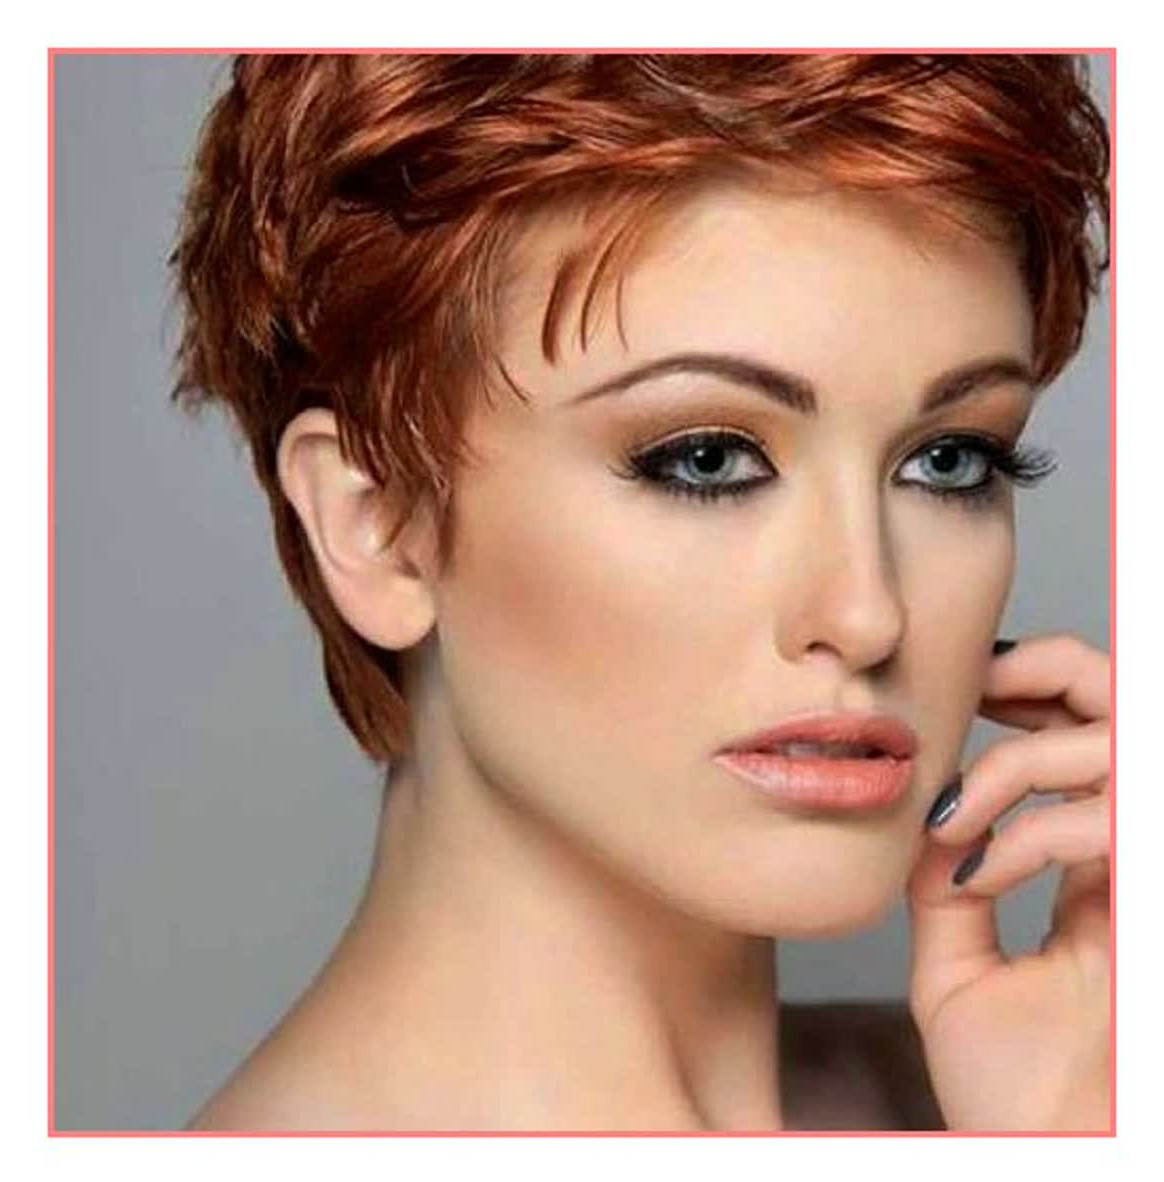 Hairstyles 2018 Female Short Wavy Hair | Fepa Philately With Regard To Short Haircuts Thick Wavy Hair (View 24 of 25)